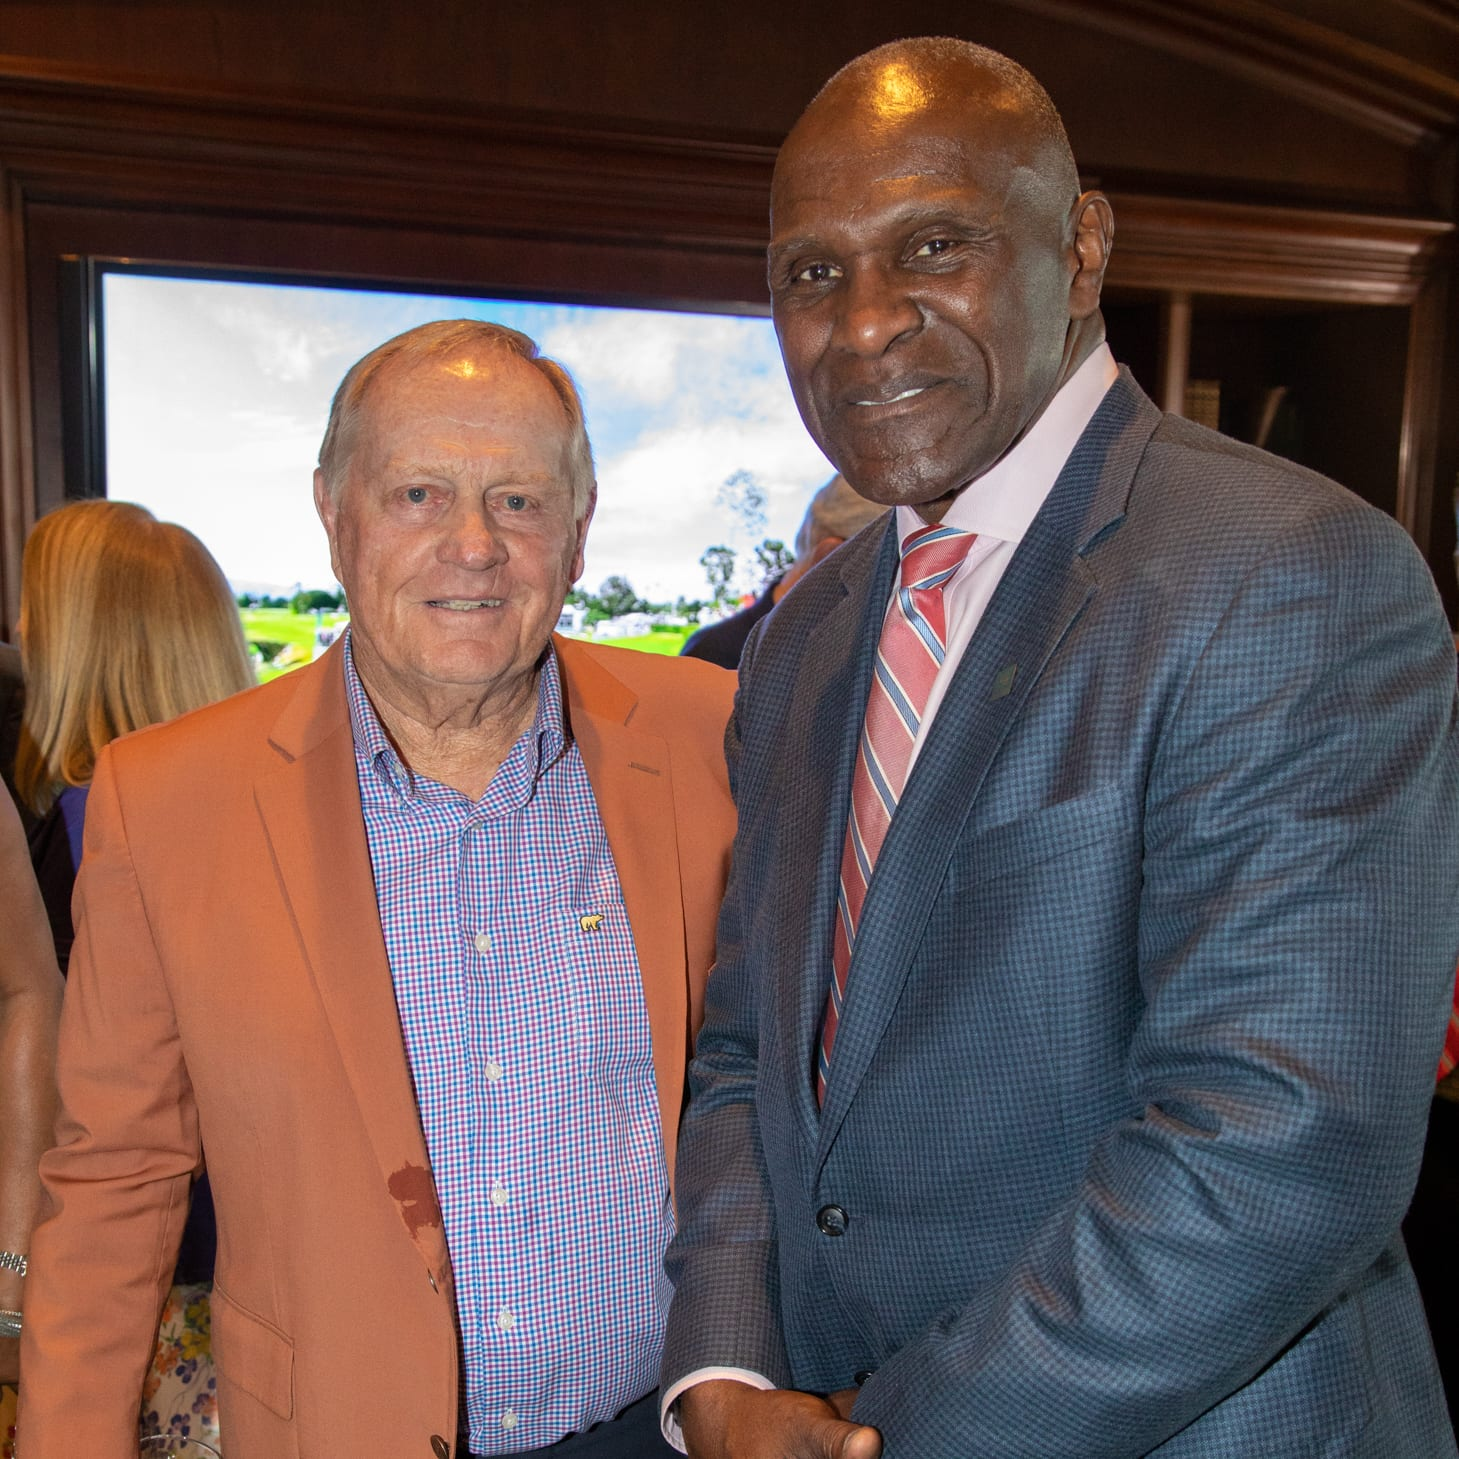 Jack Nicklaus and Harry Carson